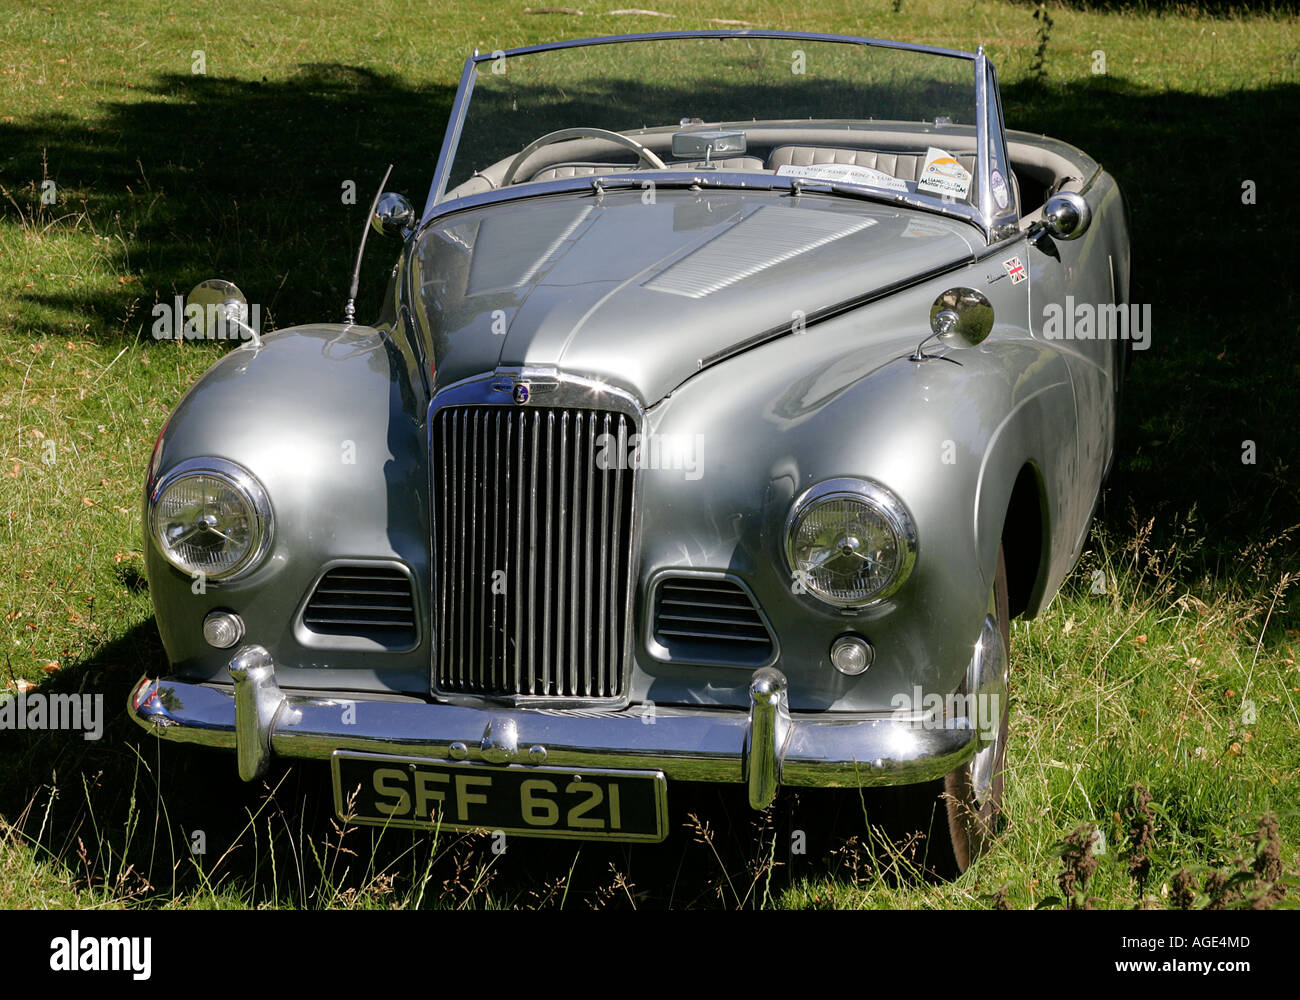 Supreme Sunbeam classic car old history vehicle vintage antipodes ...